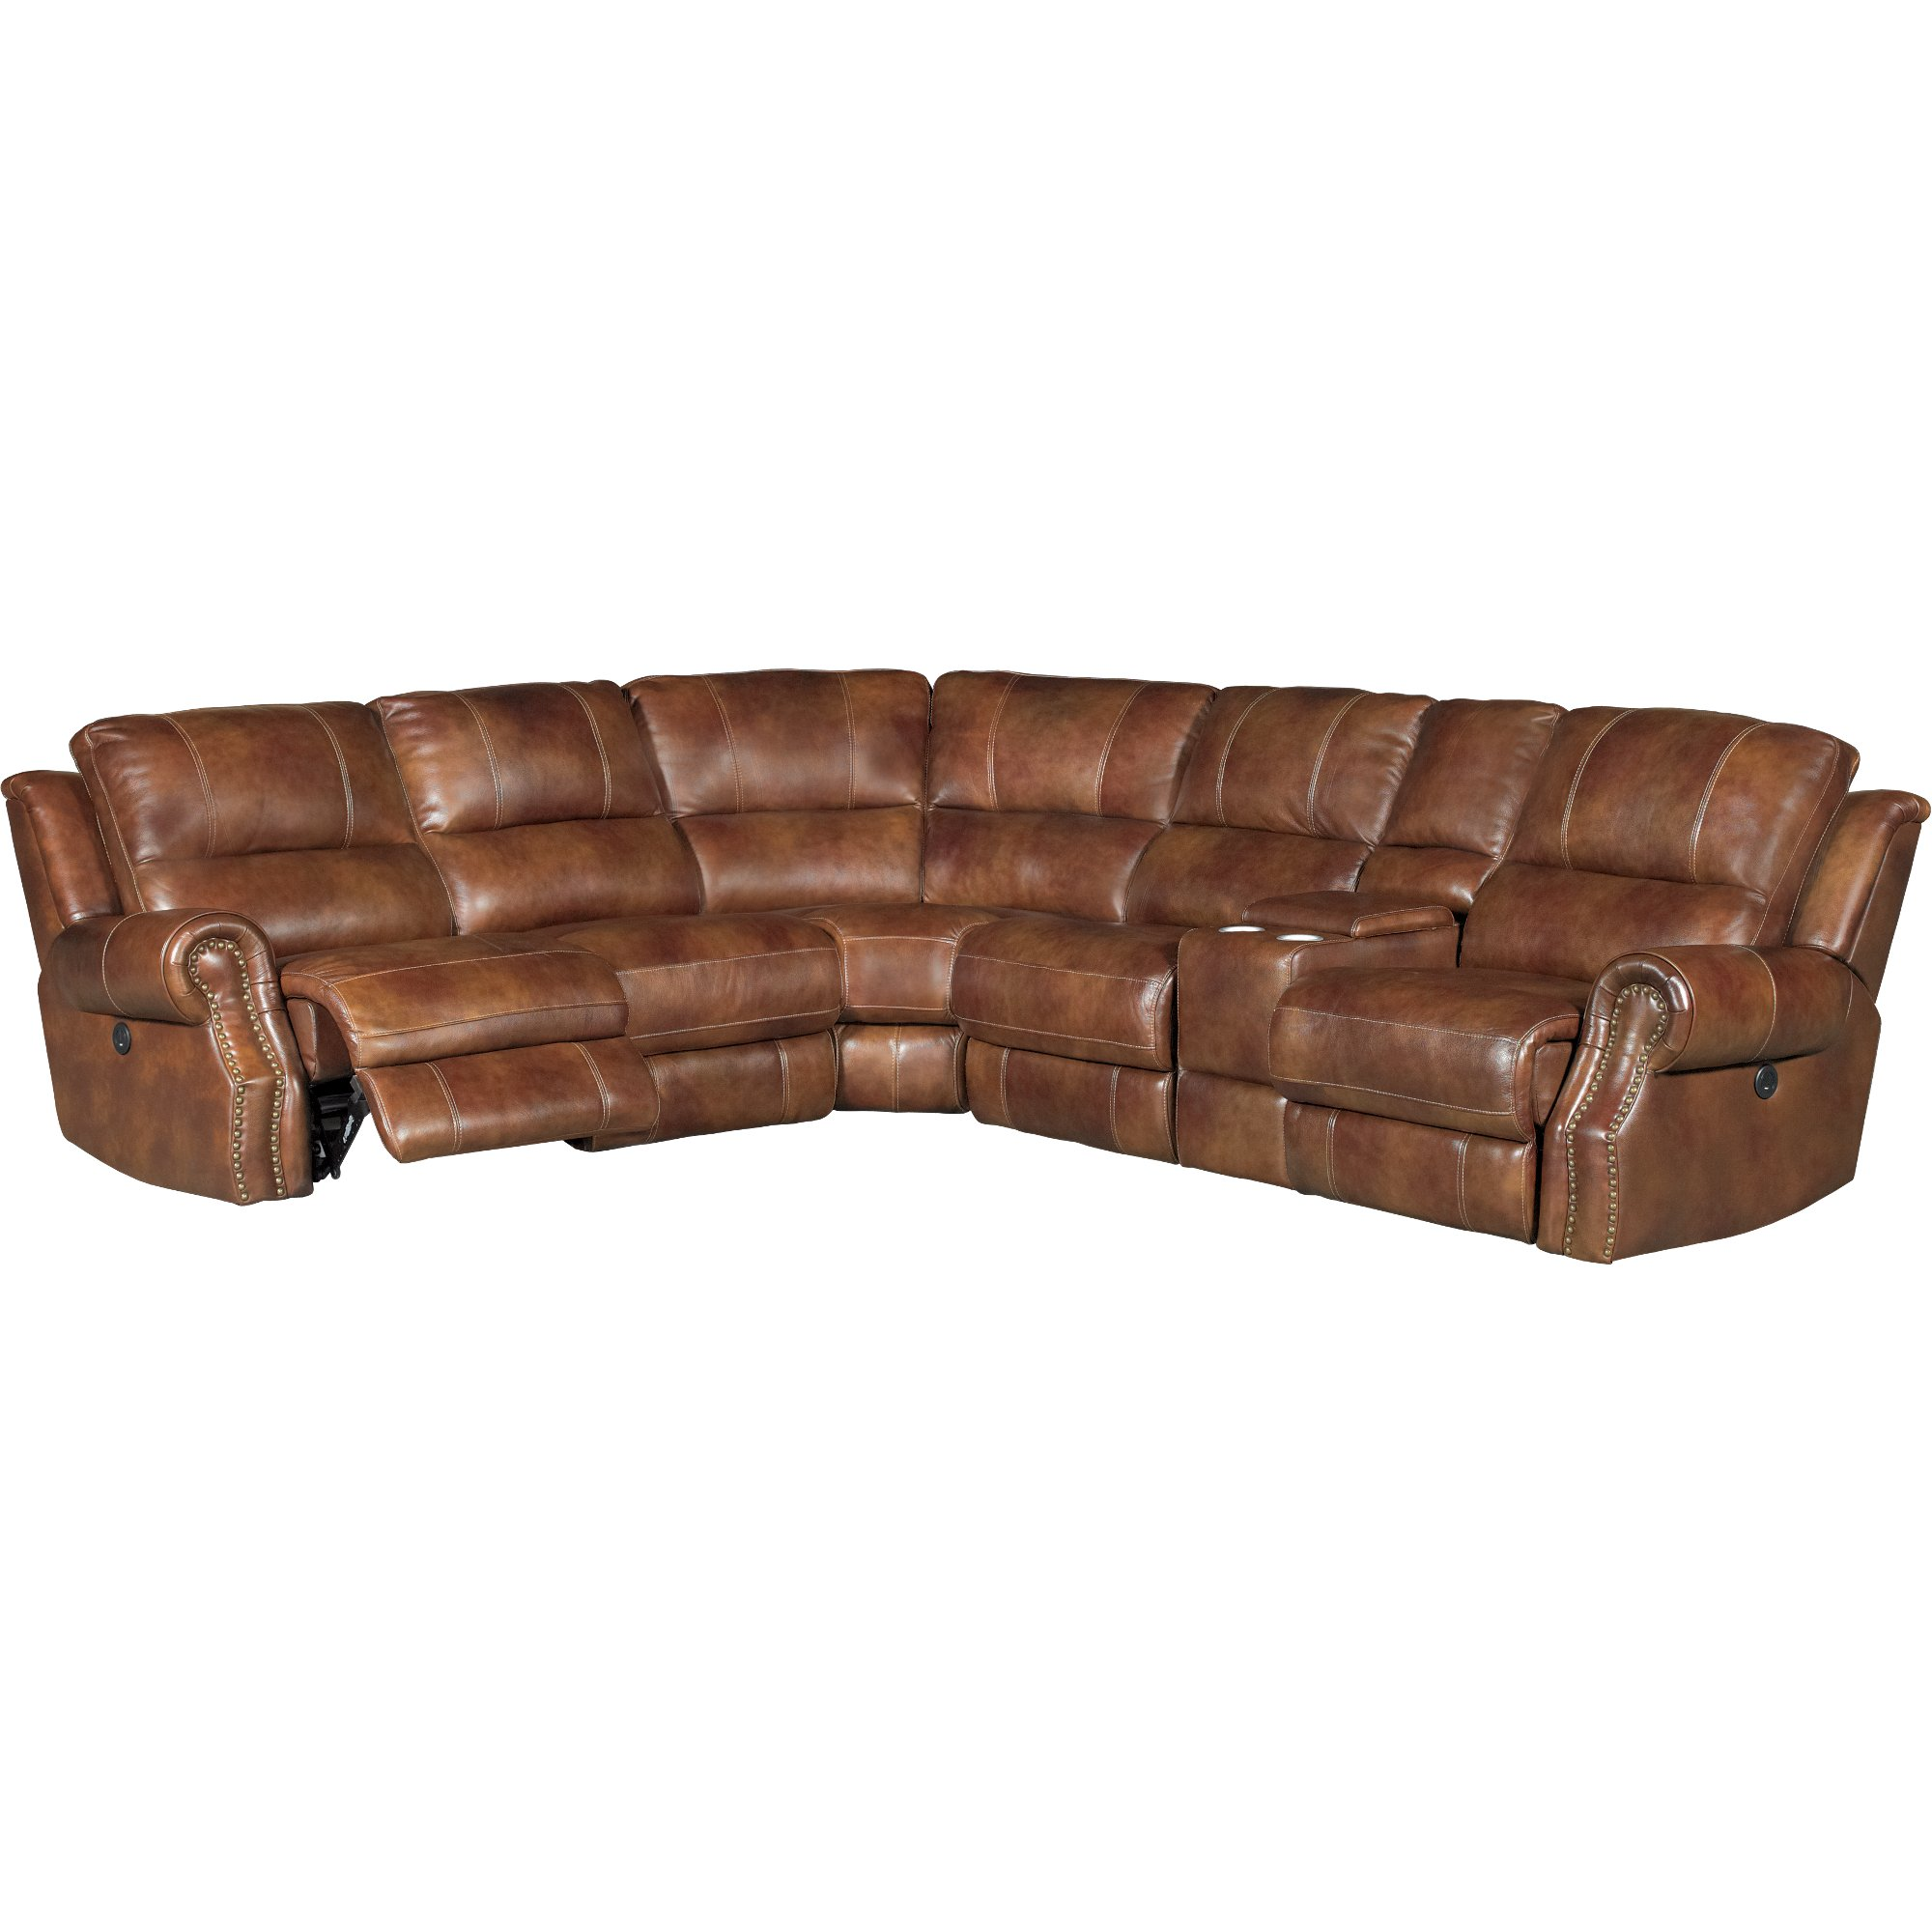 large plush sectional sofa scs fabric sofas and chairs chestnut brown 6 piece power reclining nailhead rc willey furniture store